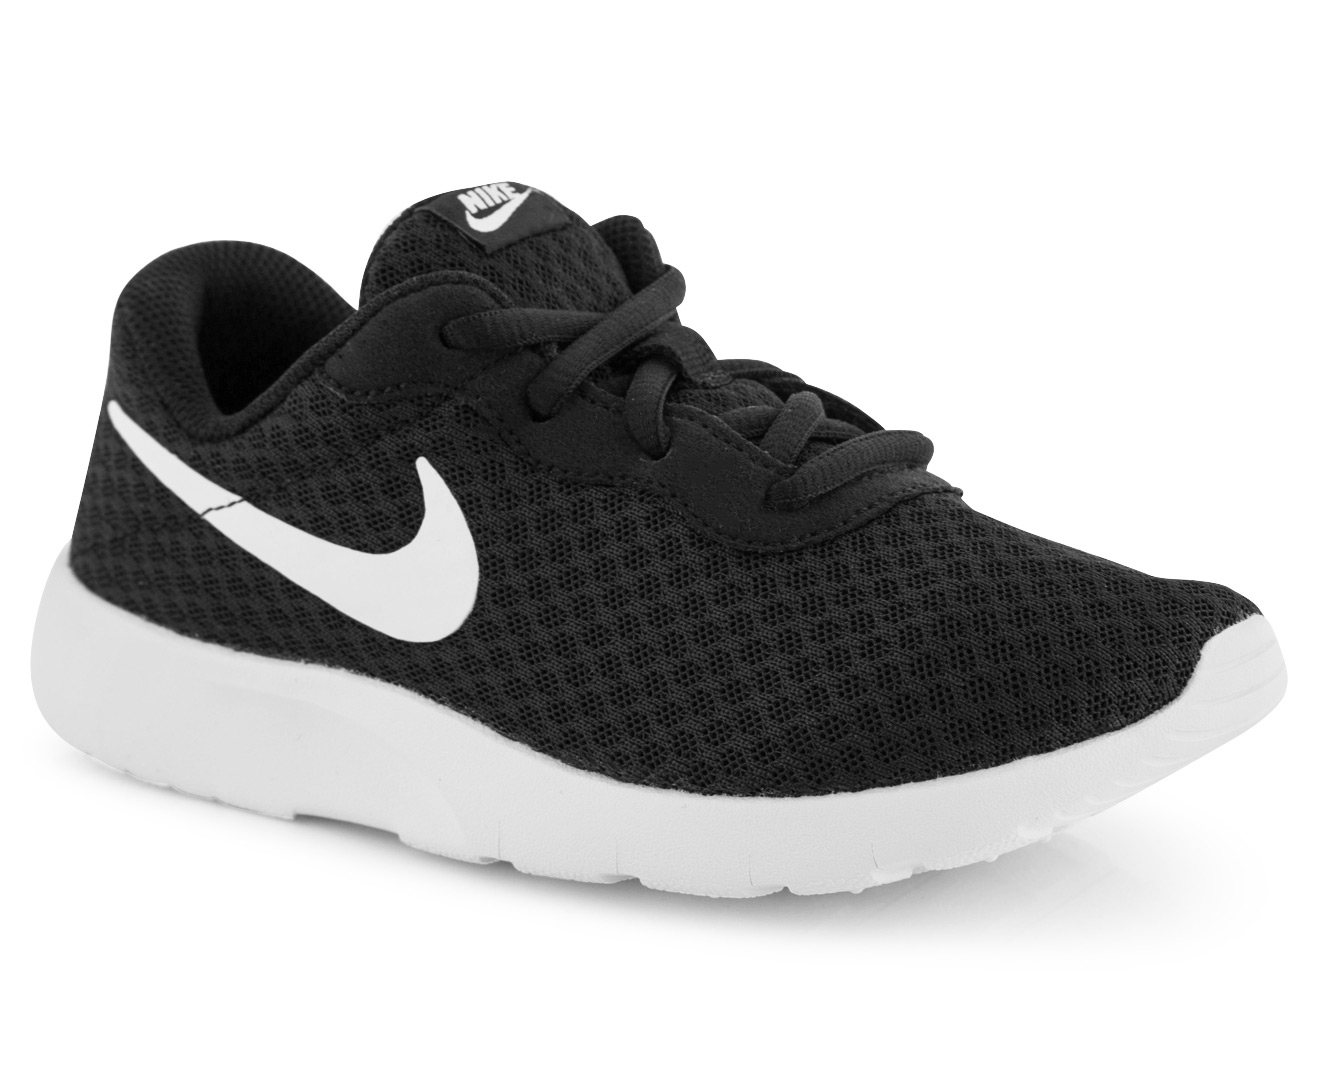 competitive price 06972 aeef8 nike free 5.0 on feet white nursing shoes men